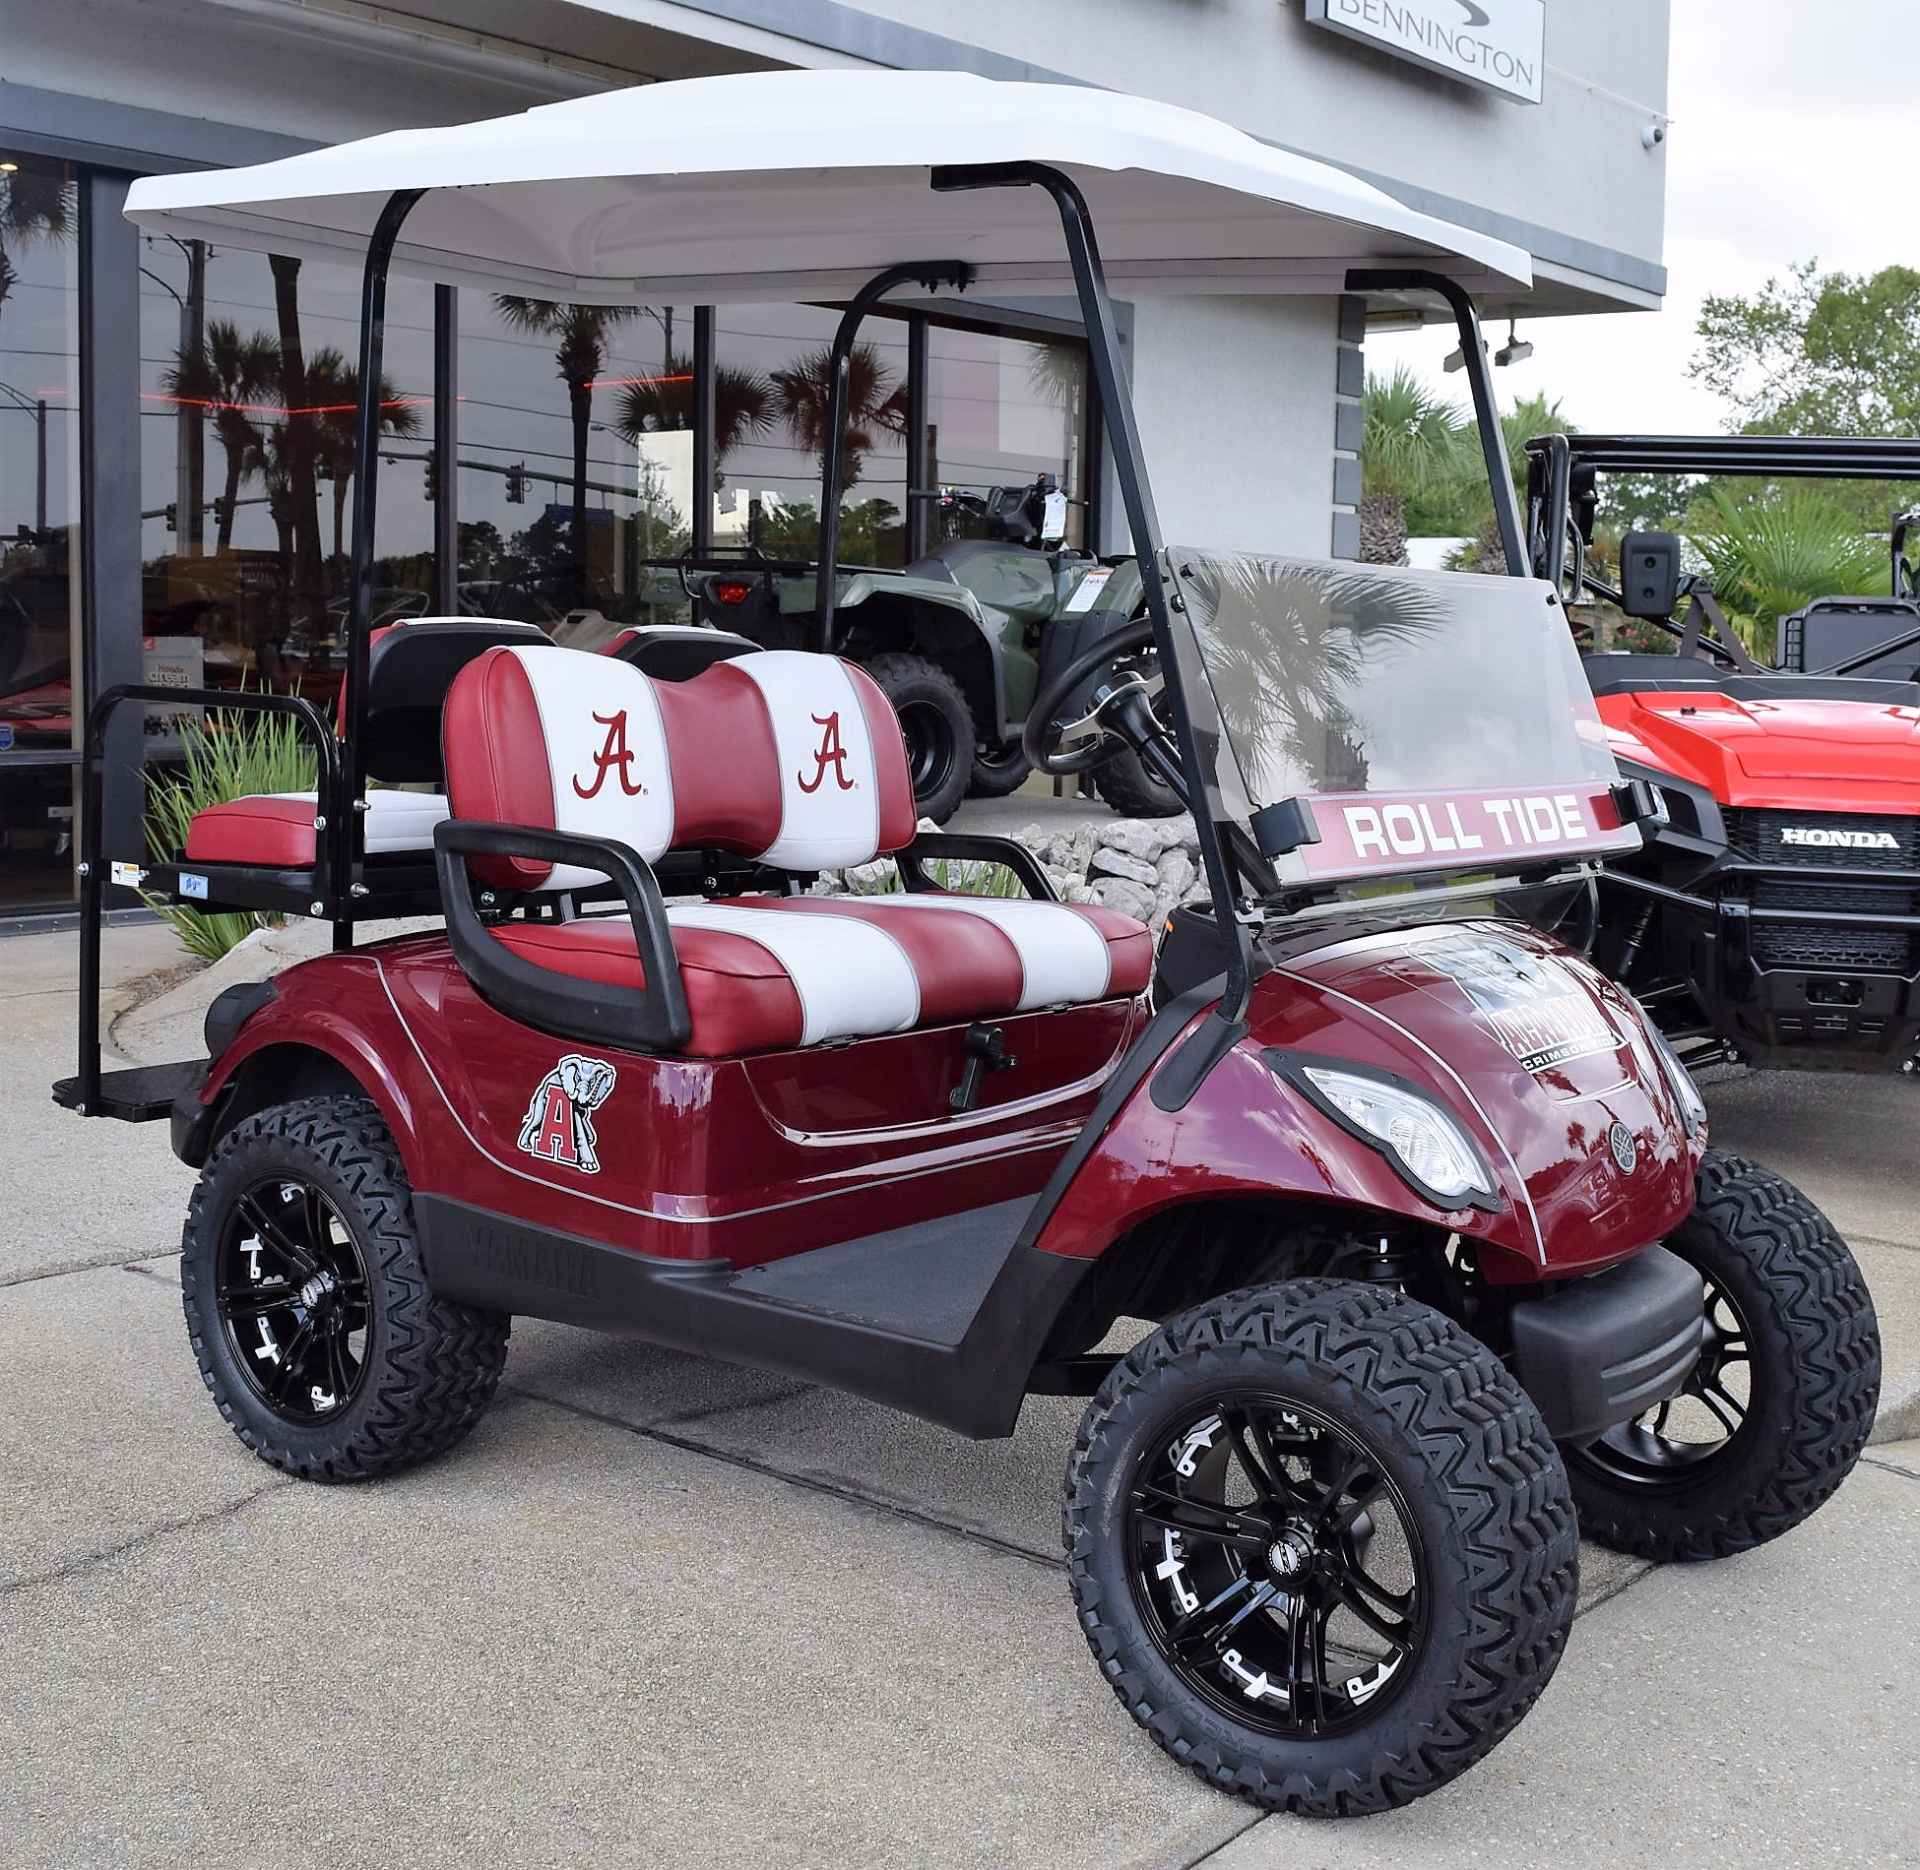 Used Golf Cars for Sale Near Me Elegant Tags Page 1 Golfcart atvs for Sale New or Used Golfcart atv